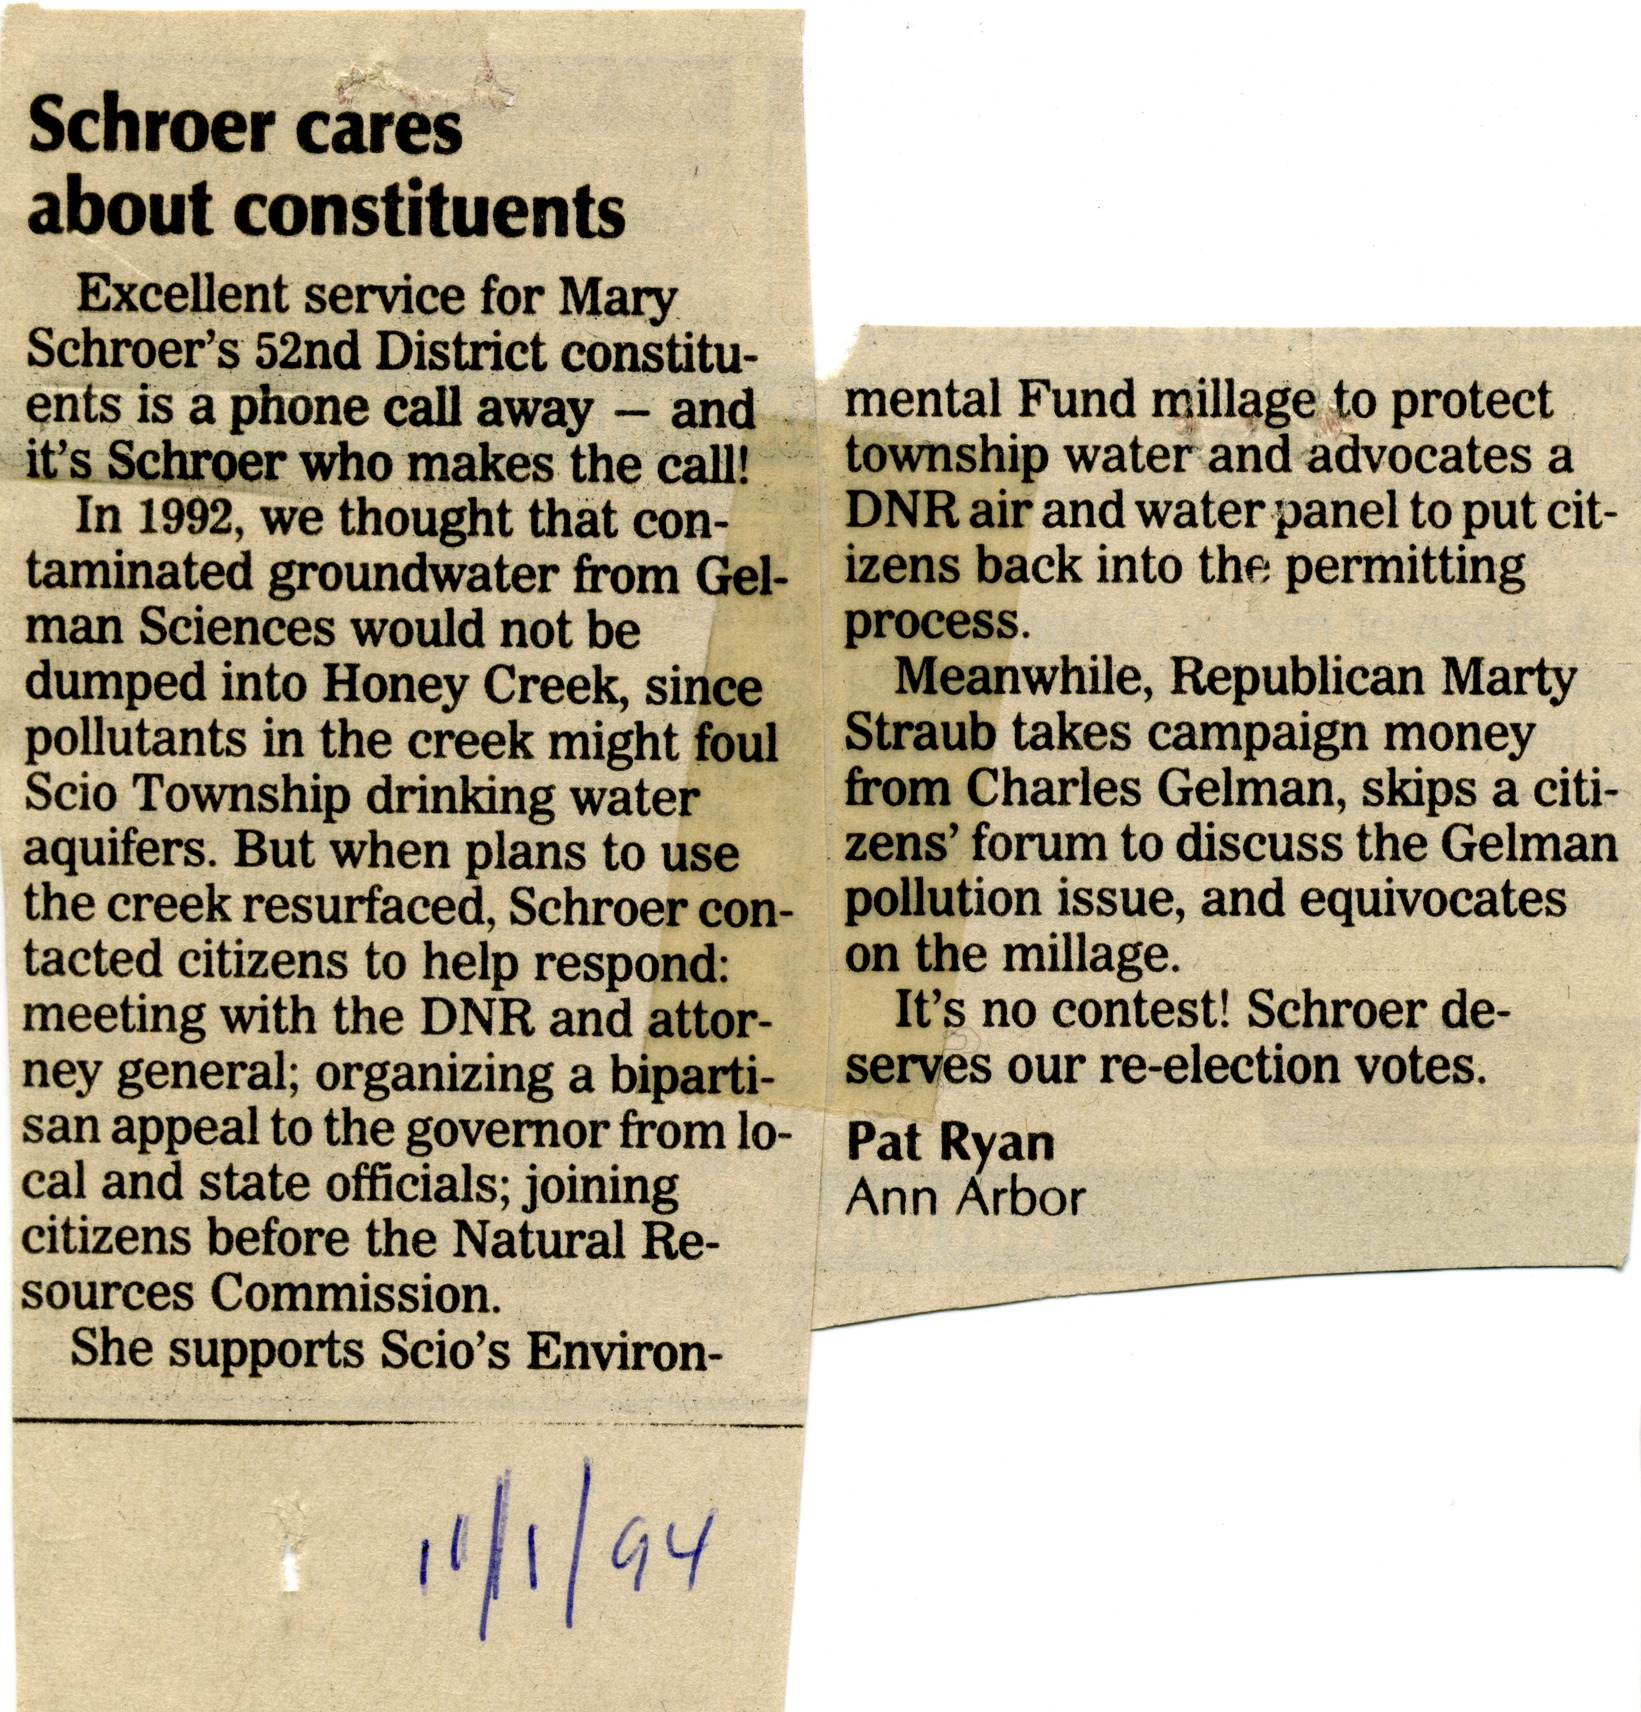 Schroer Cares About Constituents image